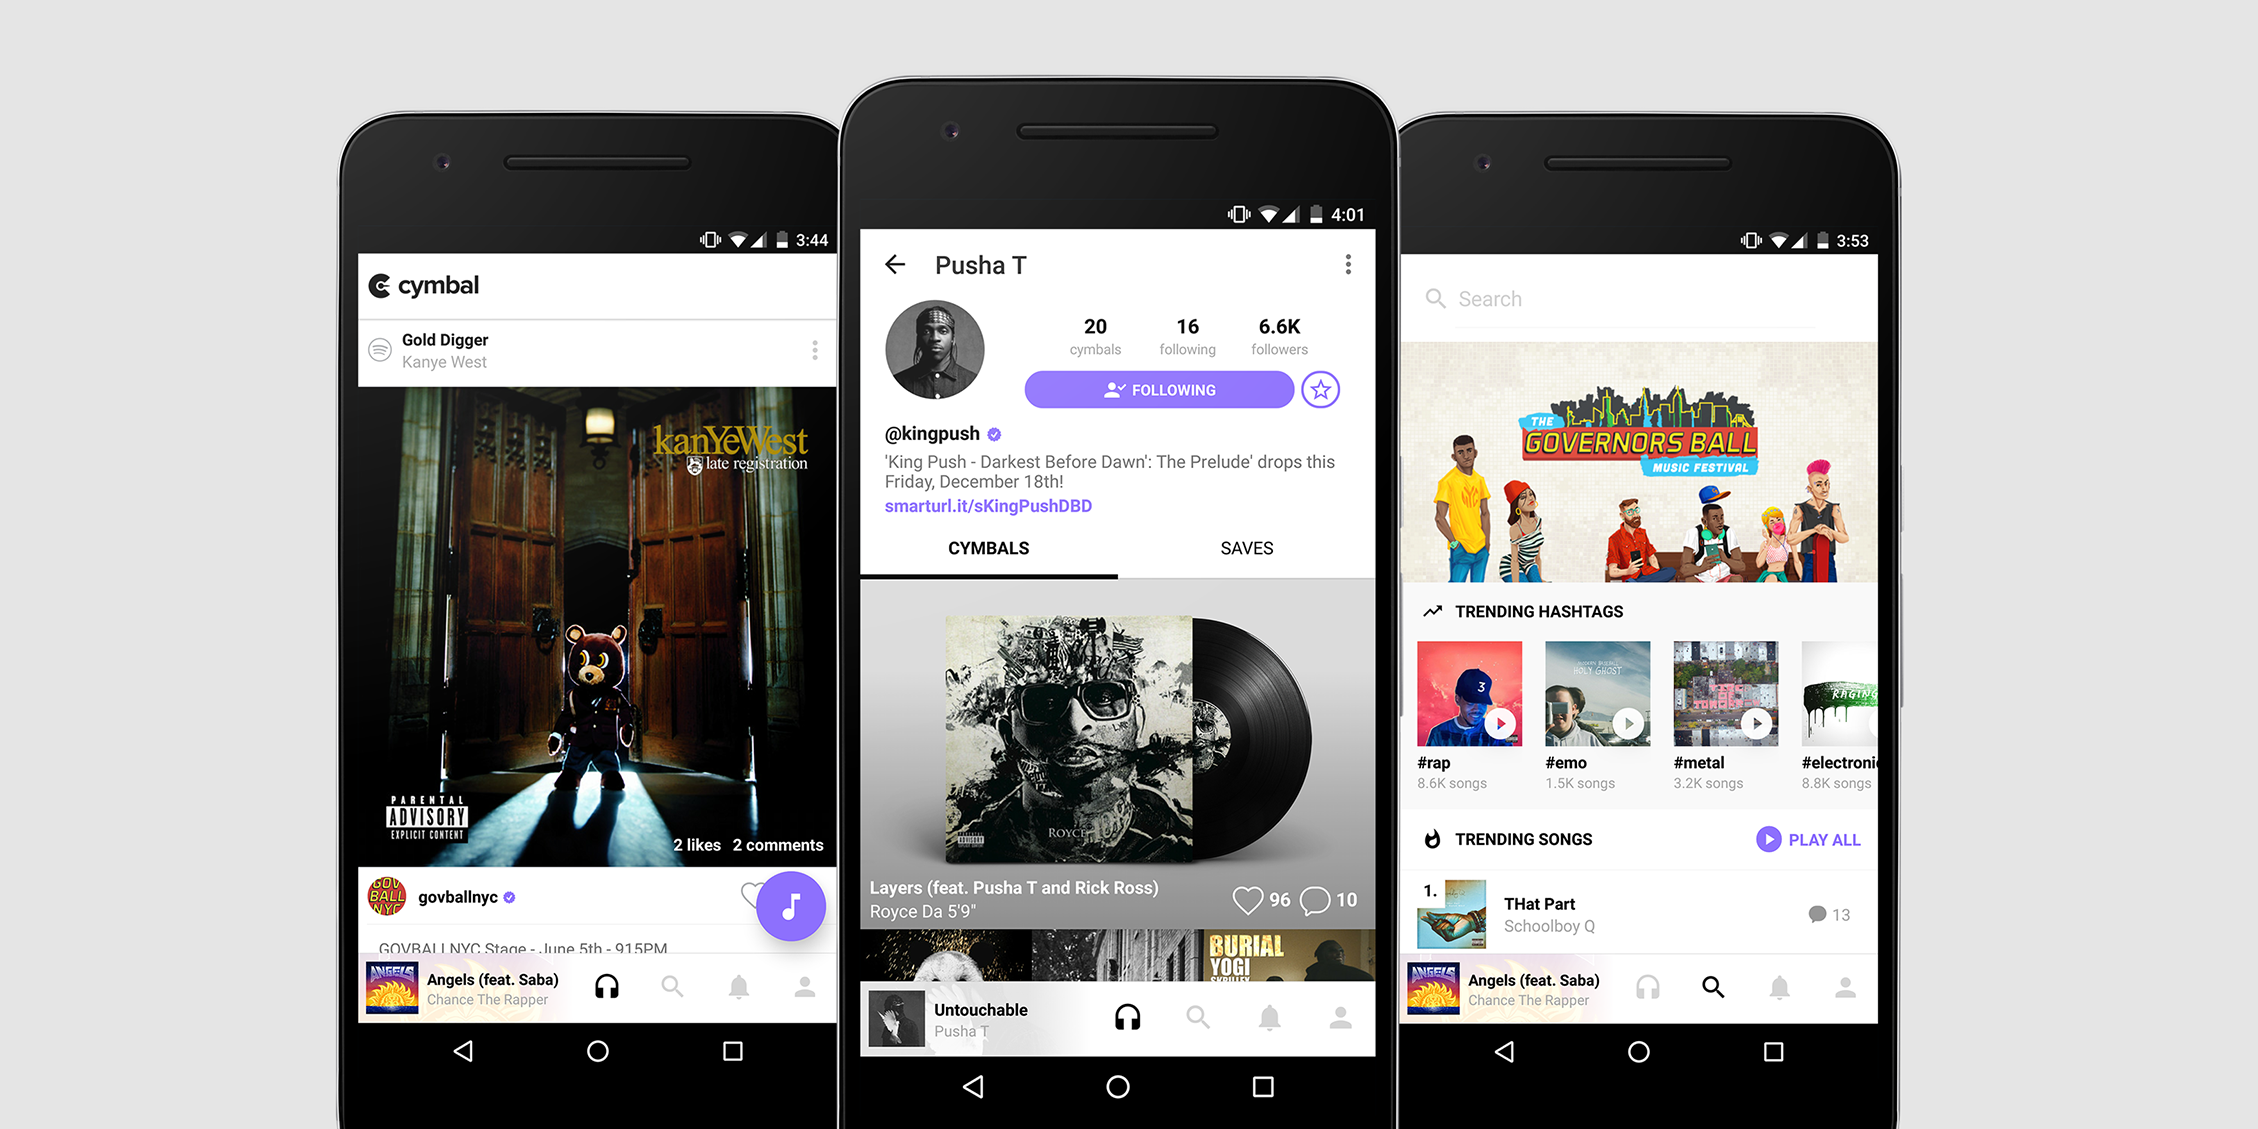 Get to know Cymbal, the Instagram for music lovers